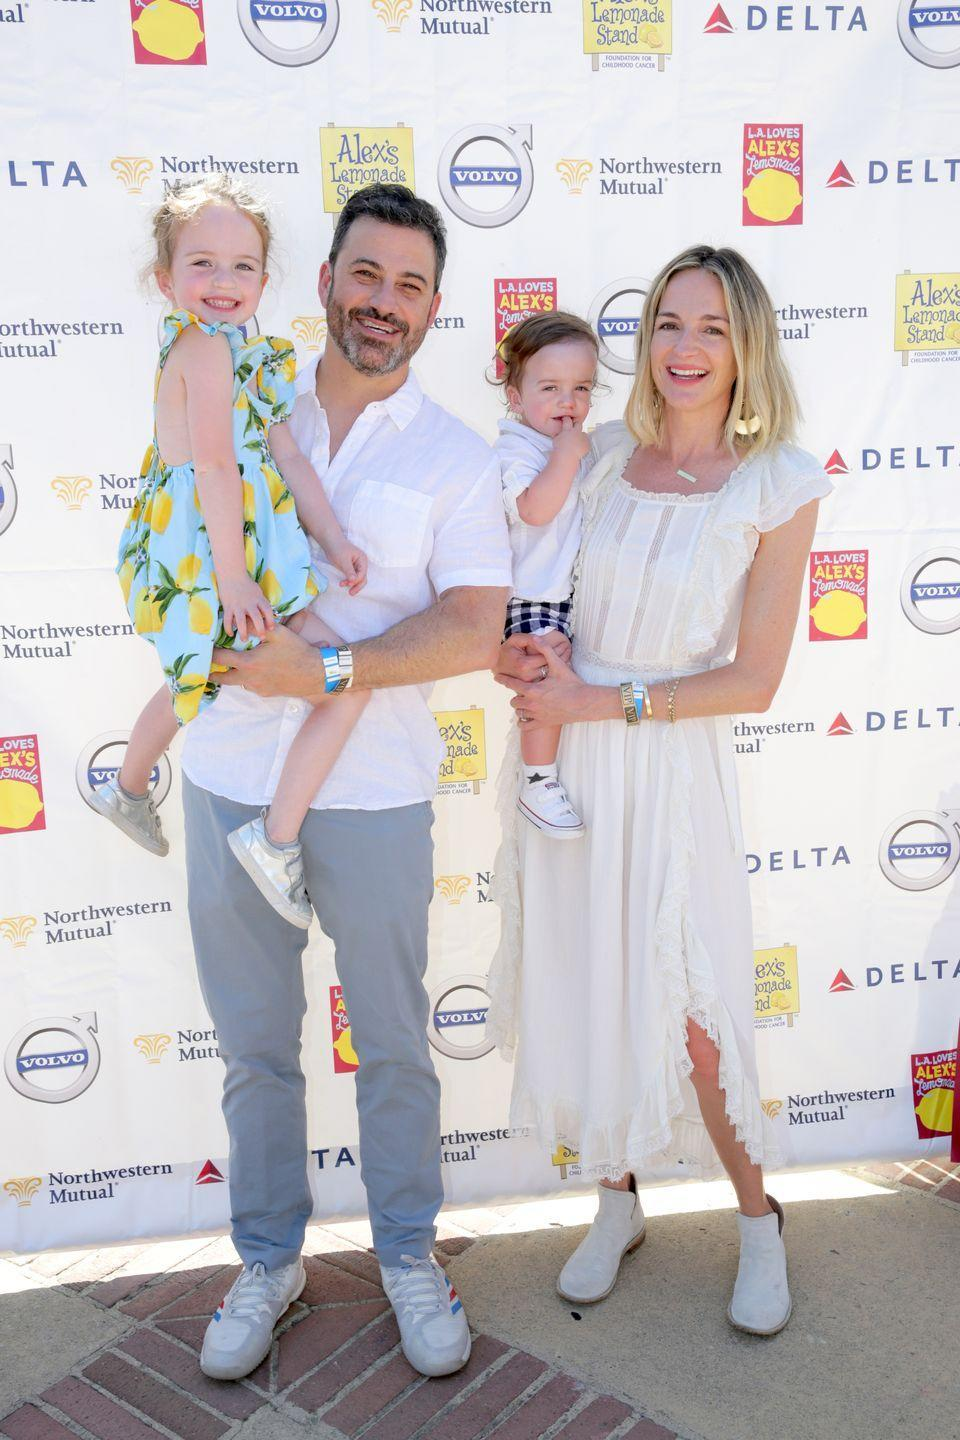 """<p><strong>Children</strong>: Katie Kimmel (29), Kevin Kimmel (26), Jane Kimmel (5), William John Billy Kimmel (3).</p><p>Between <a href=""""https://www.oprahmag.com/entertainment/a23893162/cardi-b-jimmy-kimmel-daughter-birth/"""" rel=""""nofollow noopener"""" target=""""_blank"""" data-ylk=""""slk:hosting famous stars like Cardi B"""" class=""""link rapid-noclick-resp"""">hosting famous stars like Cardi B</a>, <a href=""""https://www.oprahmag.com/entertainment/a27569119/halle-berry-kisses-lena-waithe-jimmy-kimmel-live/"""" rel=""""nofollow noopener"""" target=""""_blank"""" data-ylk=""""slk:Halle Berry and Lena Waithe"""" class=""""link rapid-noclick-resp"""">Halle Berry and Lena Waithe</a> on his late-night show, the 52-year-old comedian has two adult children with his ex-wife Gina Maddy, as well as a young daughter and son with current wife Molly McNearney.</p>"""